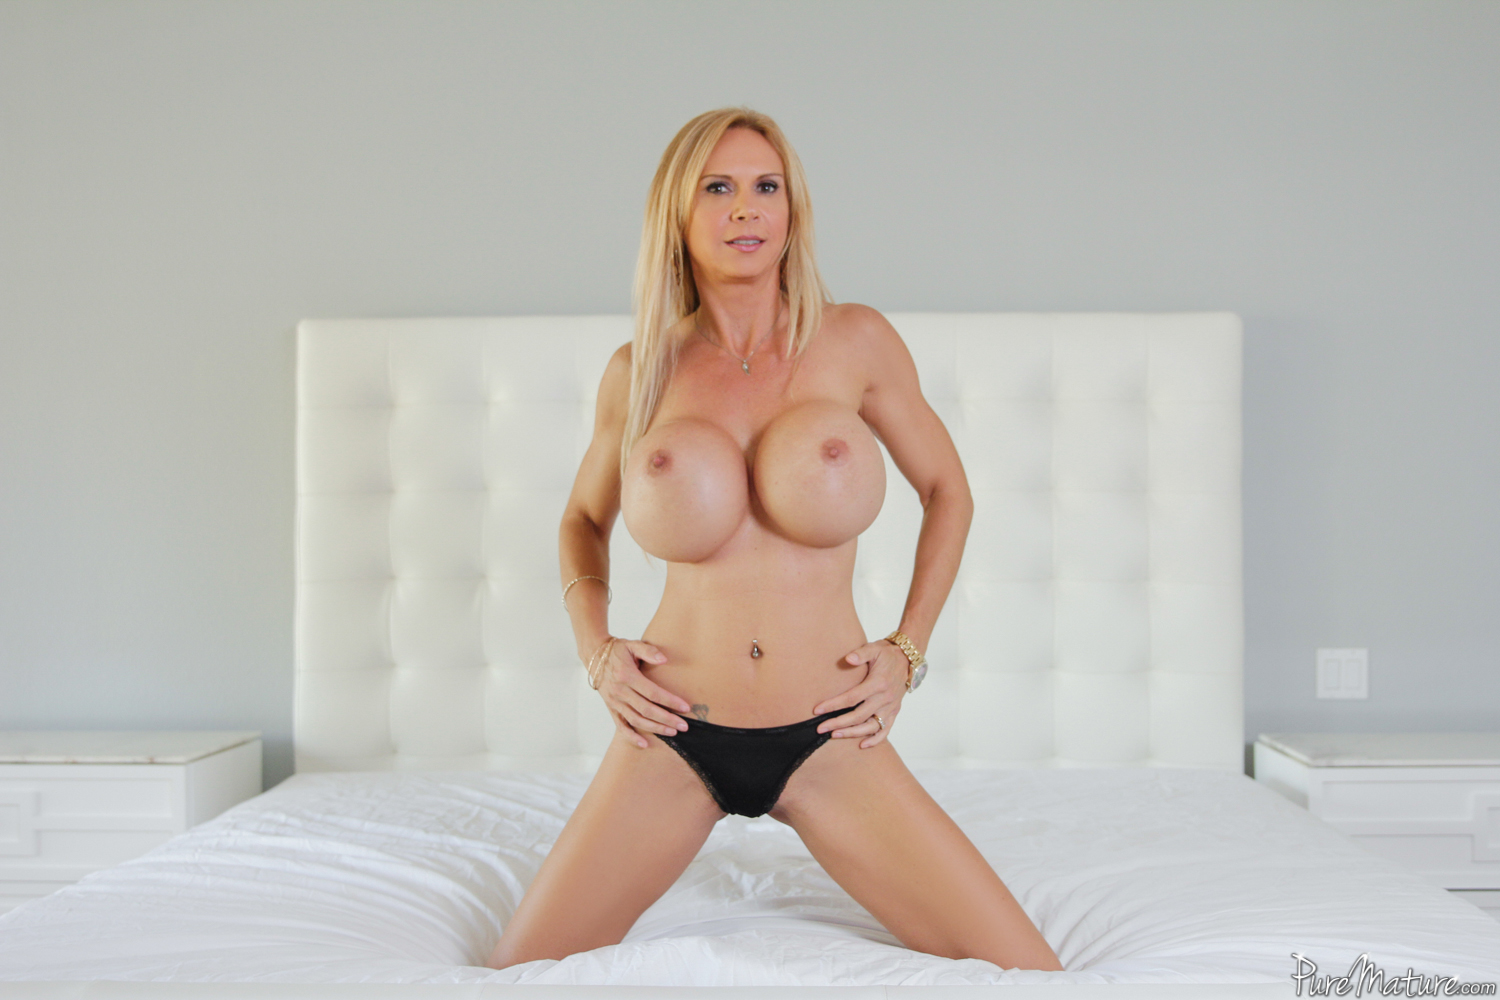 Gallery of brooketyler010815 - HD MILF Porn Movies - Pure Mature